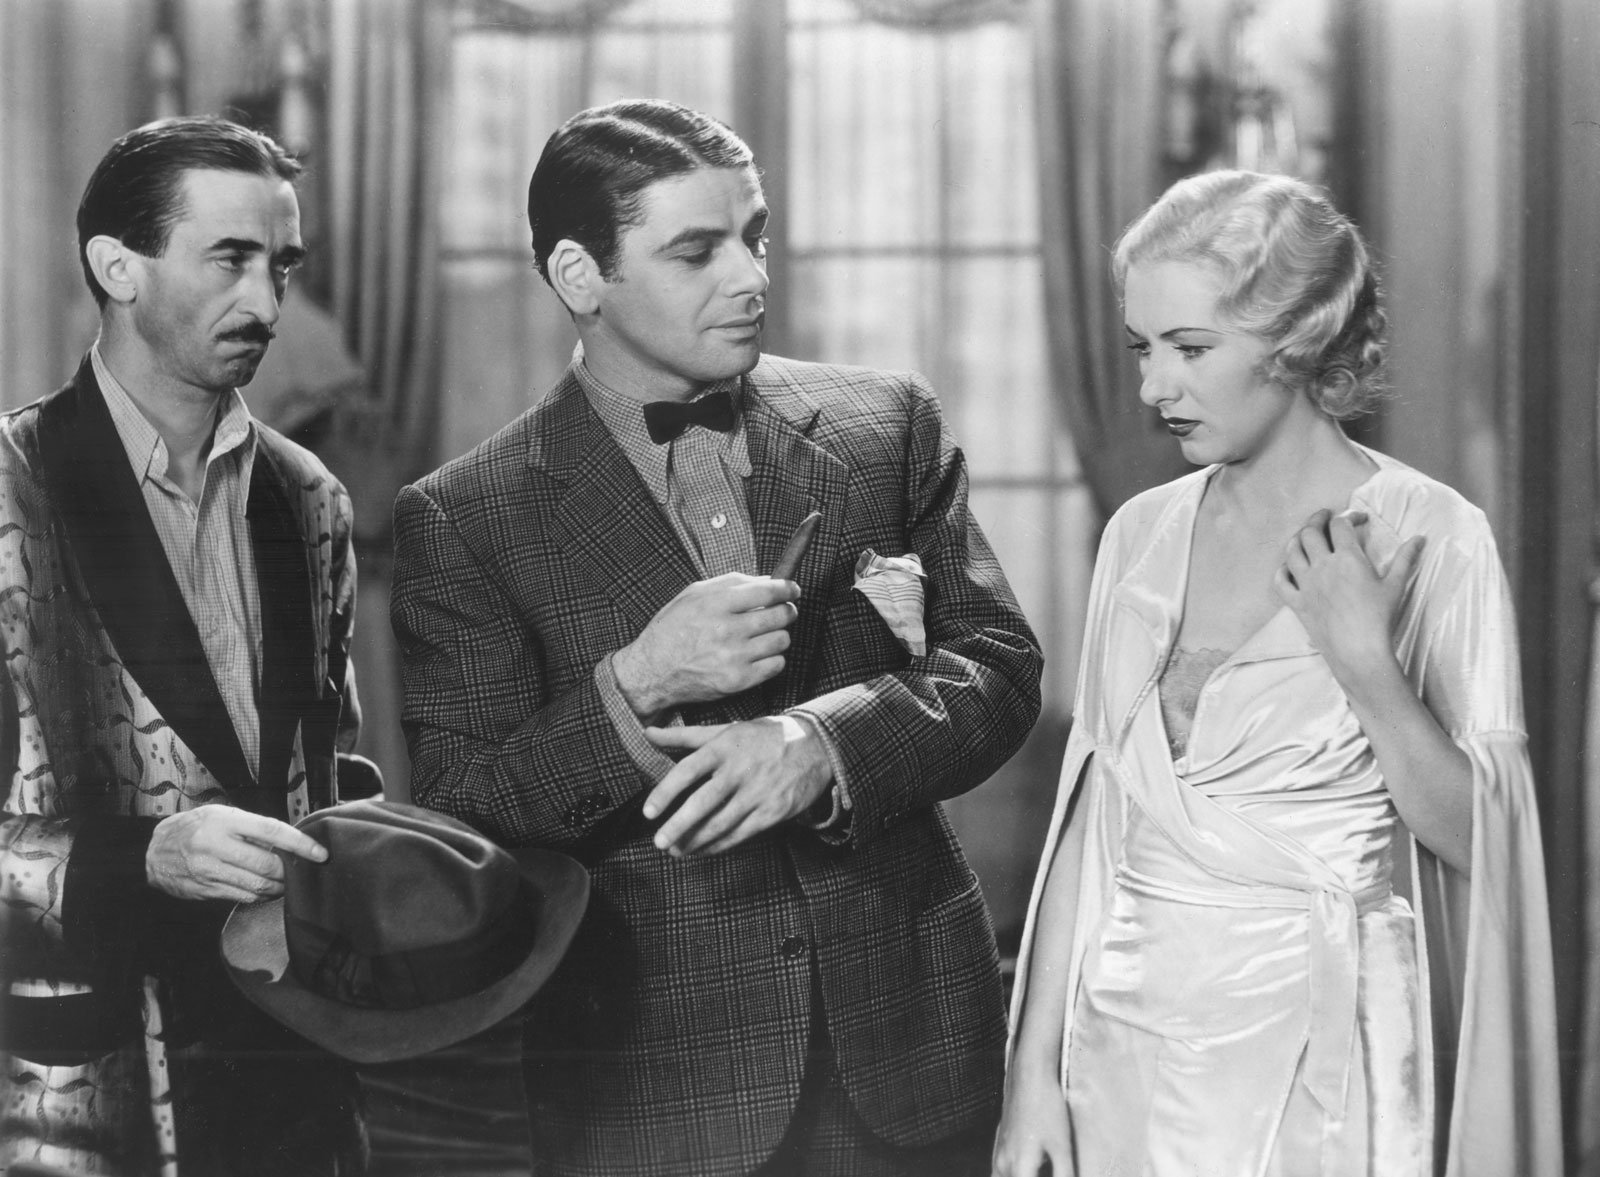 Paul Muni Scarface Say Hello To These Little Facts You Probably Didn't Know About Scarface